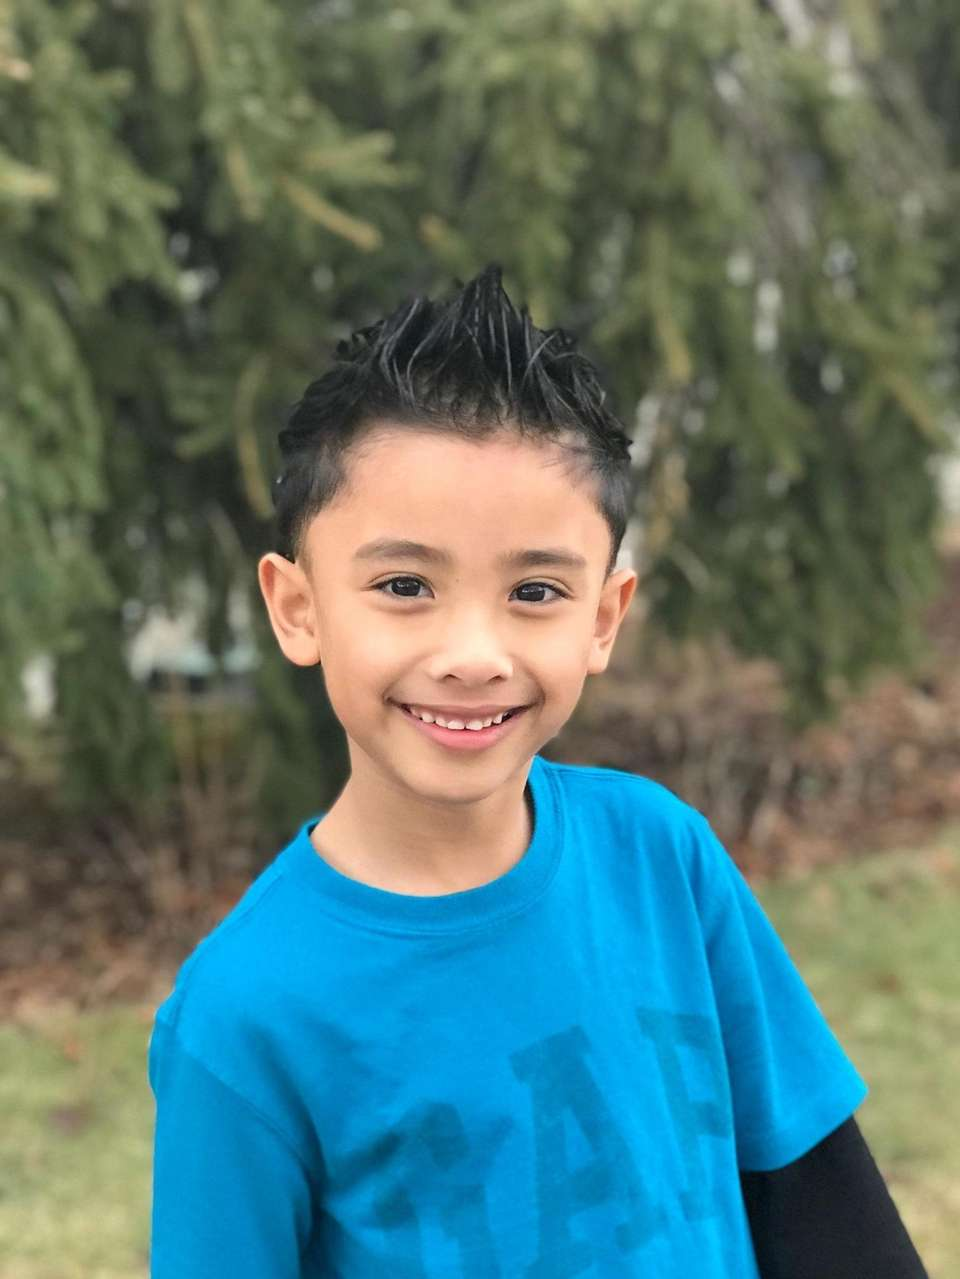 Jeremiah Trey Lasmarias, 7, Levittown Who is your